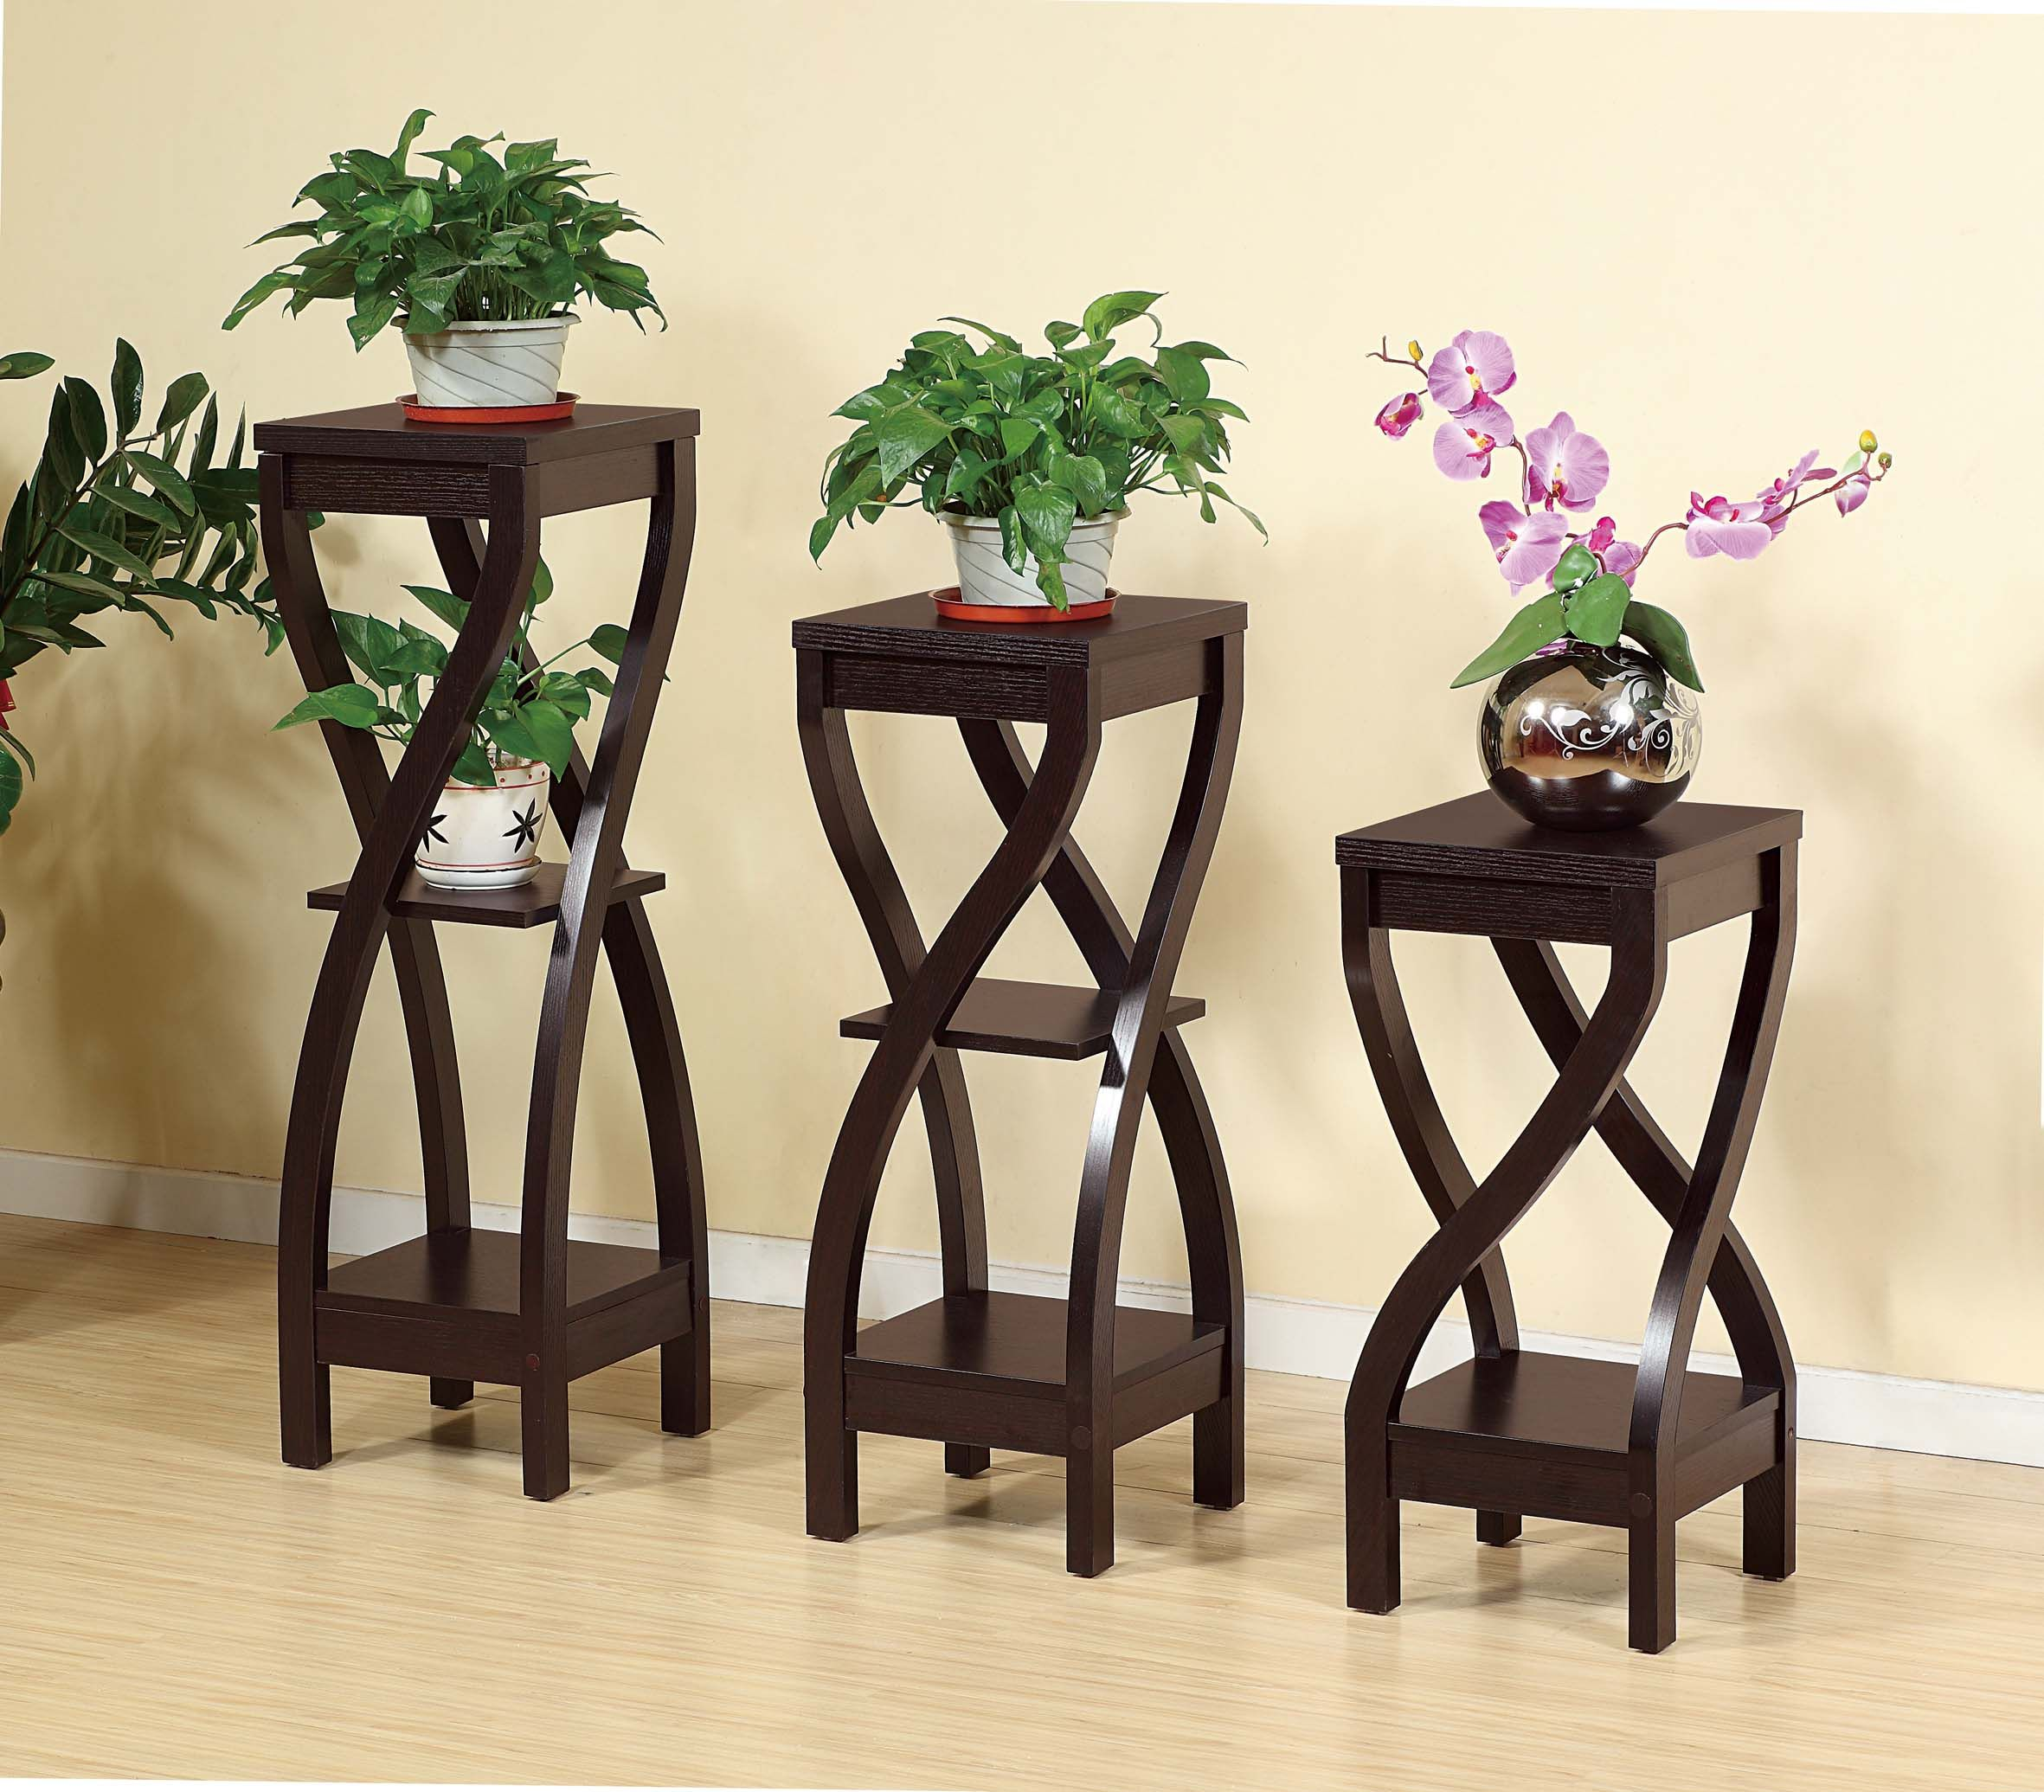 Smart Home Rosecran Red Cocoa Plant Stands Features An All